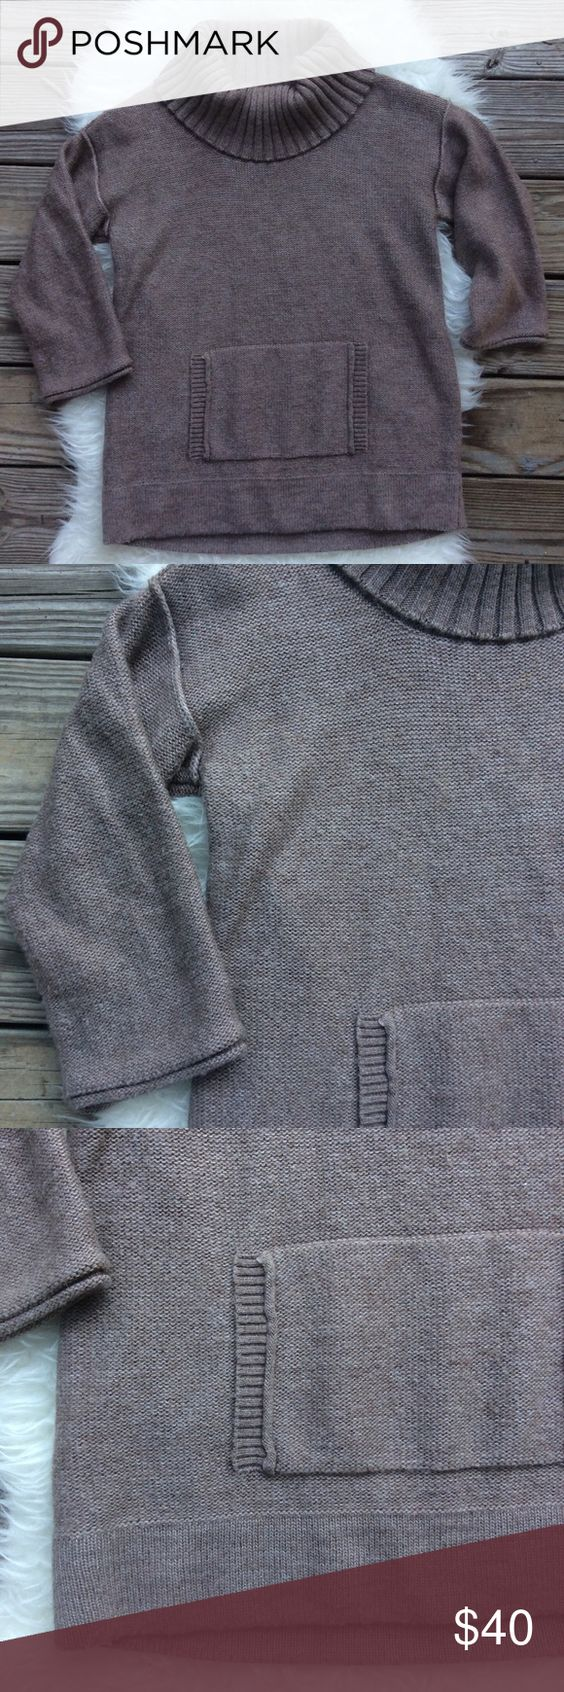 "J.Crew Wool Pullover Sweater Excellent condition J.Crew pullover sweater. Big cowl neck, 3/4 sleeves, pouch pocket. Size Medium. 50% acrylic, 40% wool & 10% mohair. Stretchy. Bust 42"", length 27"". No trades, offers welcome. J. Crew Sweaters Cowl & Turtlenecks"